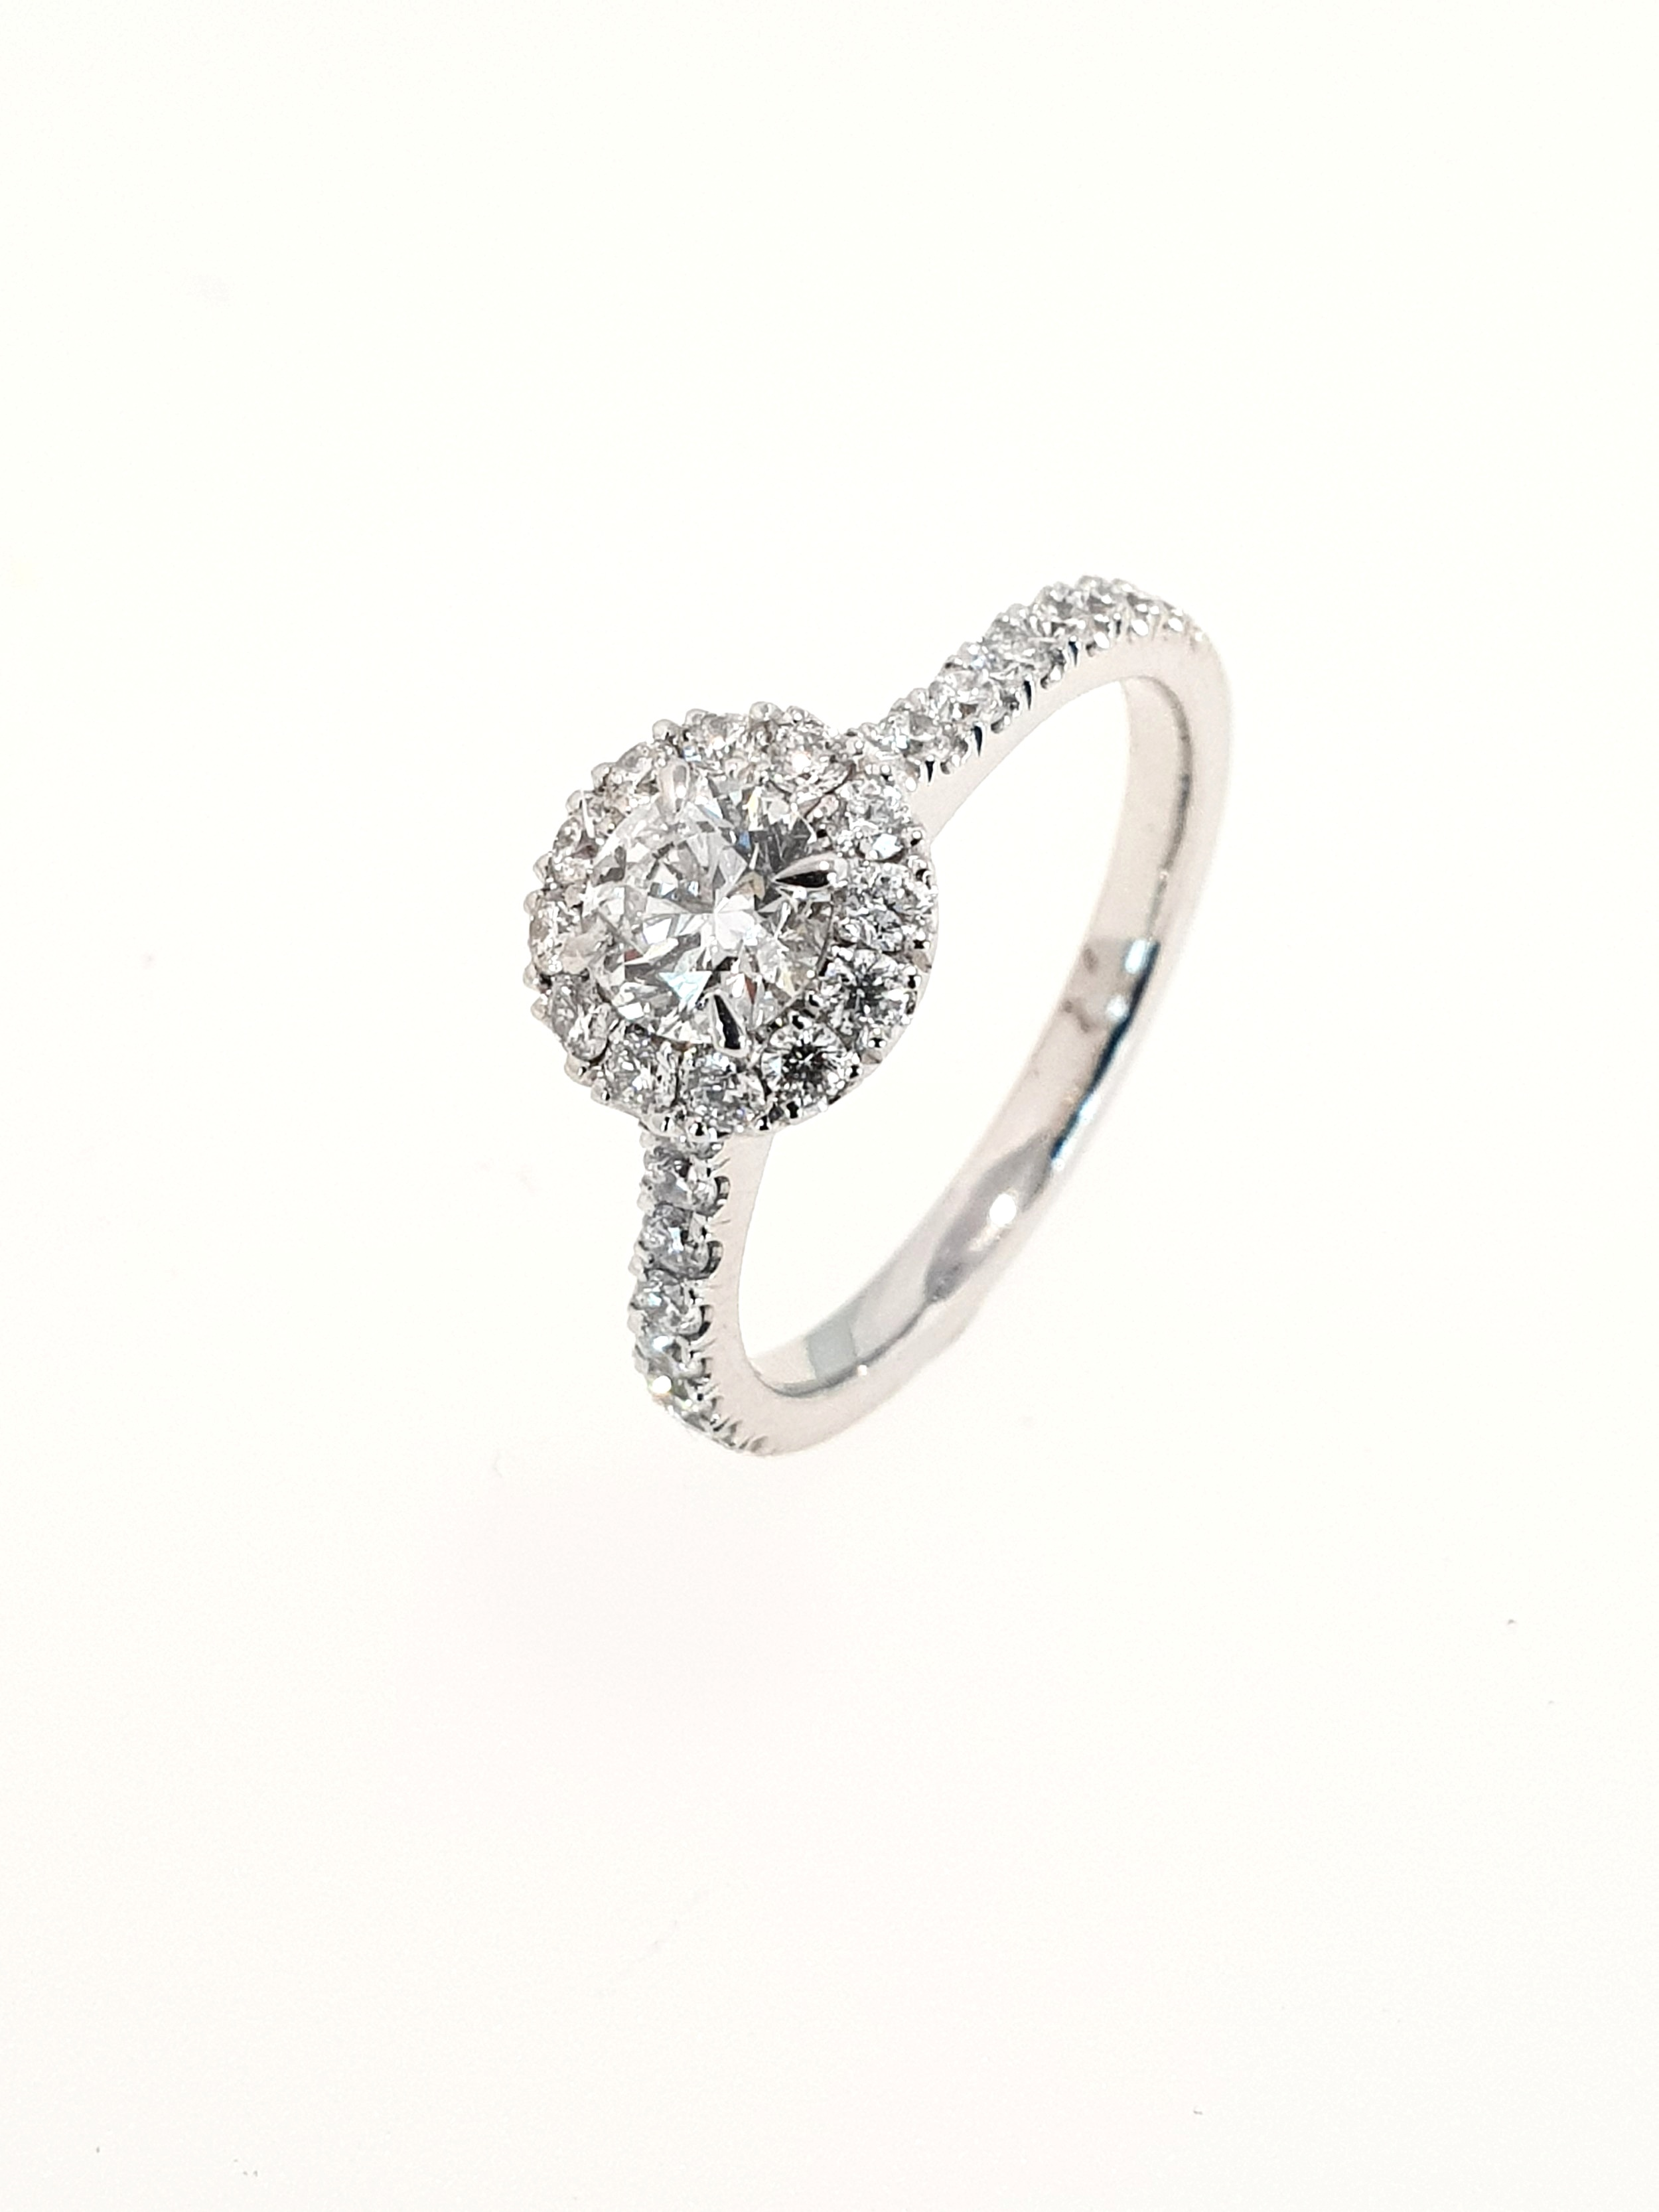 Platinum Diamond Halo Ring SOLD  TCW: 1.01ct, F, SI1  Stock Code: N8897  £5400